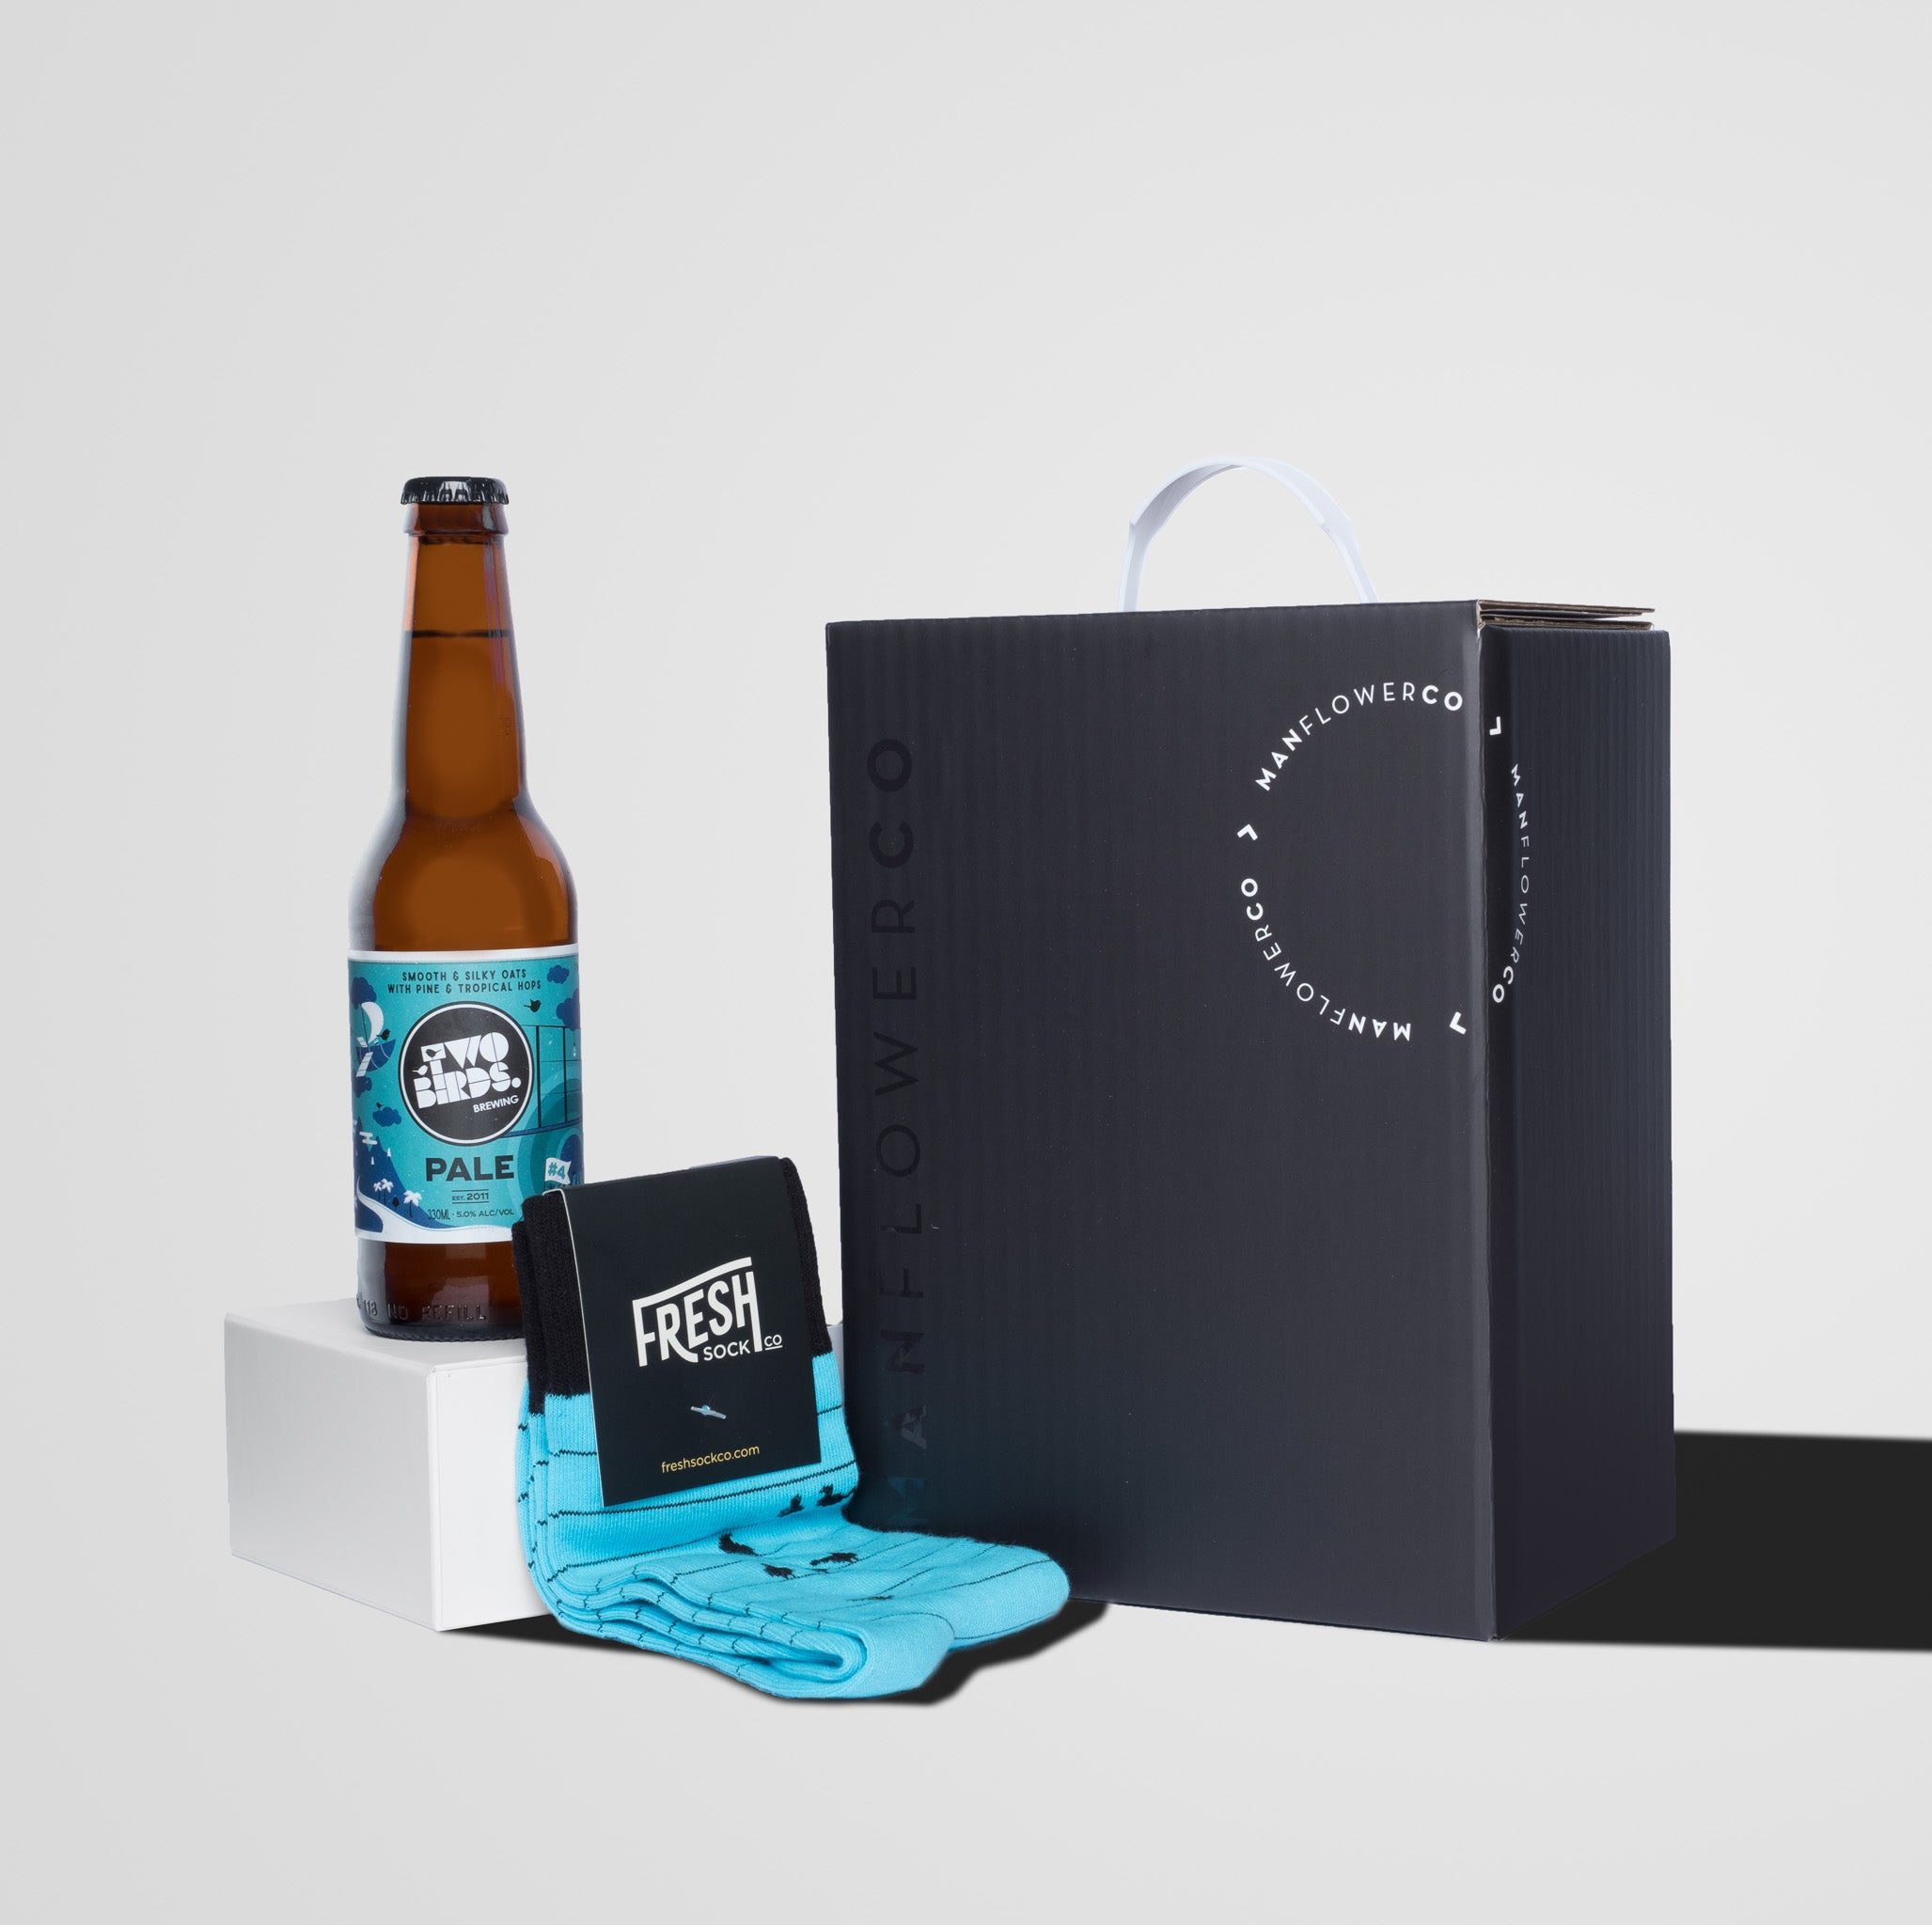 Image of Manflower Co gift box featuring Freshsock Co.